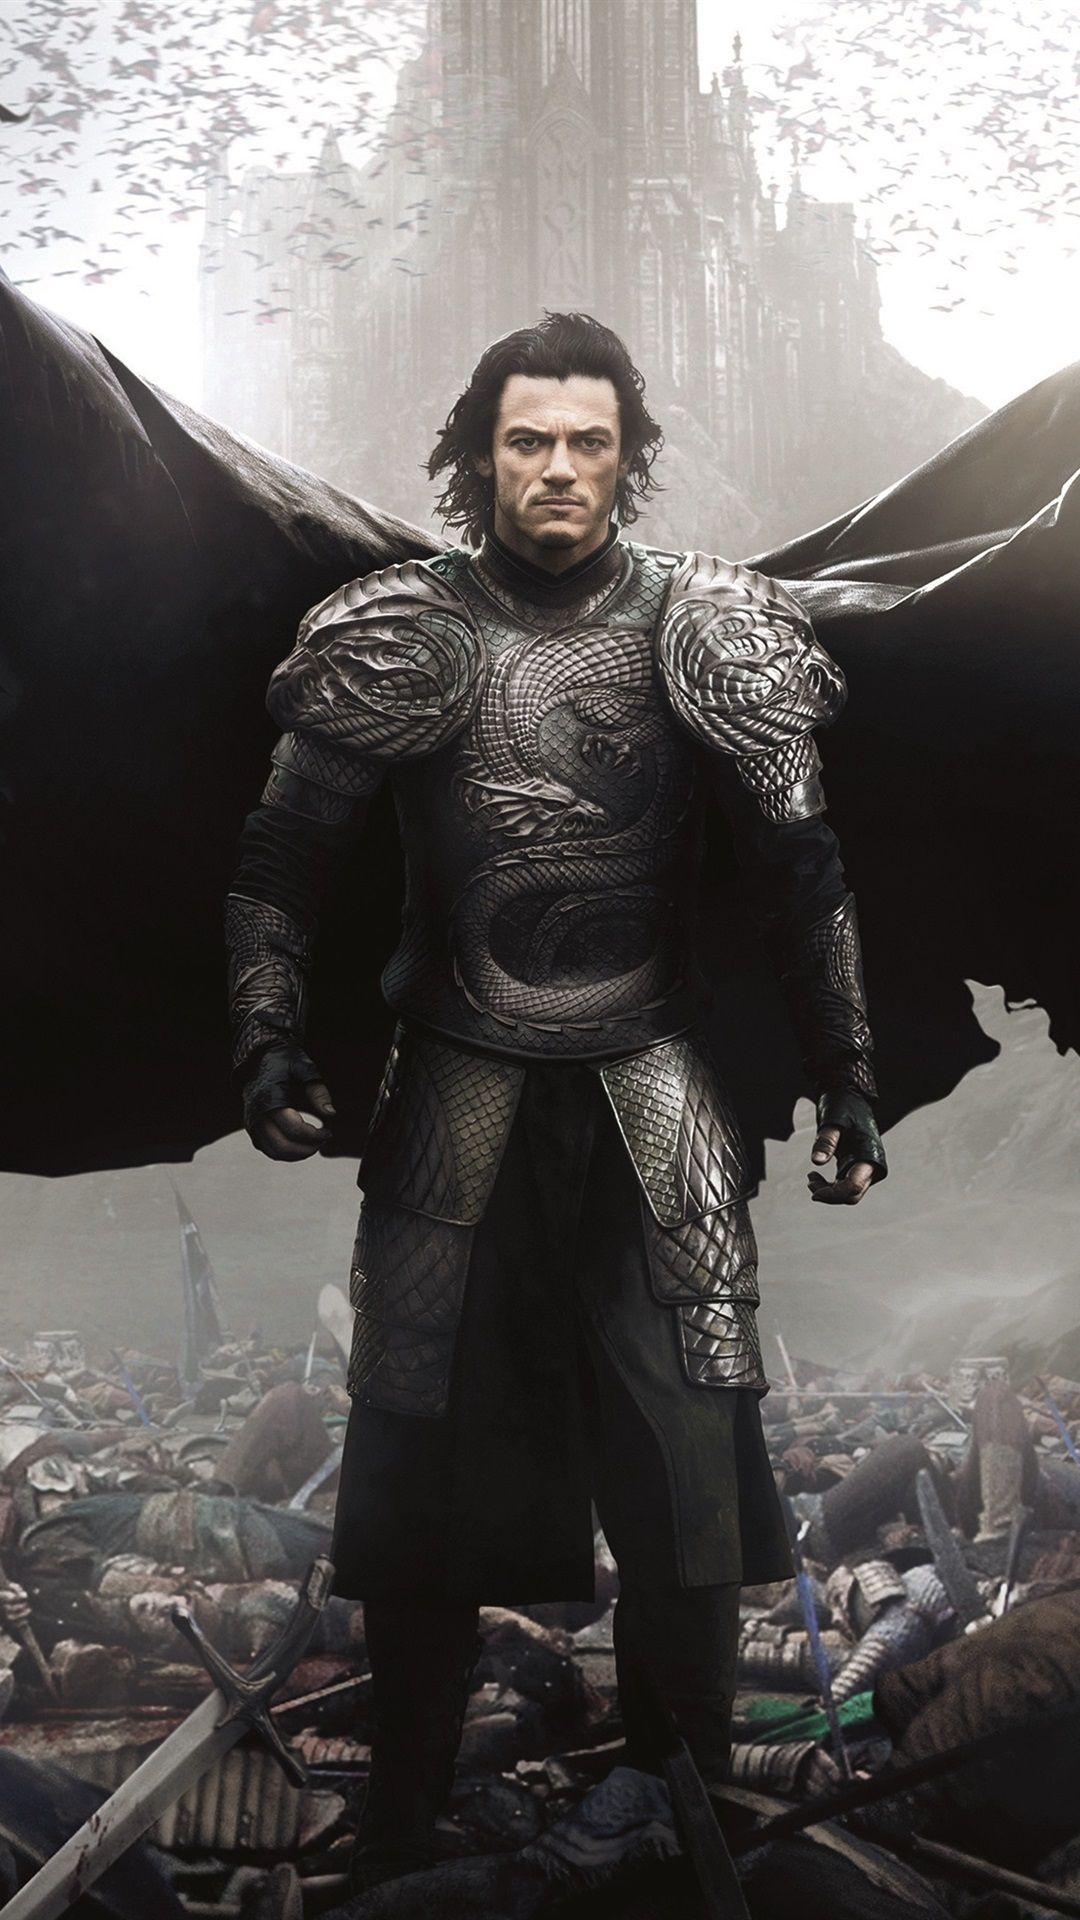 1080x1920 Dracula Untold, Luke Evans 1080x1920 iPhone 8/7/6/6S Plus ...